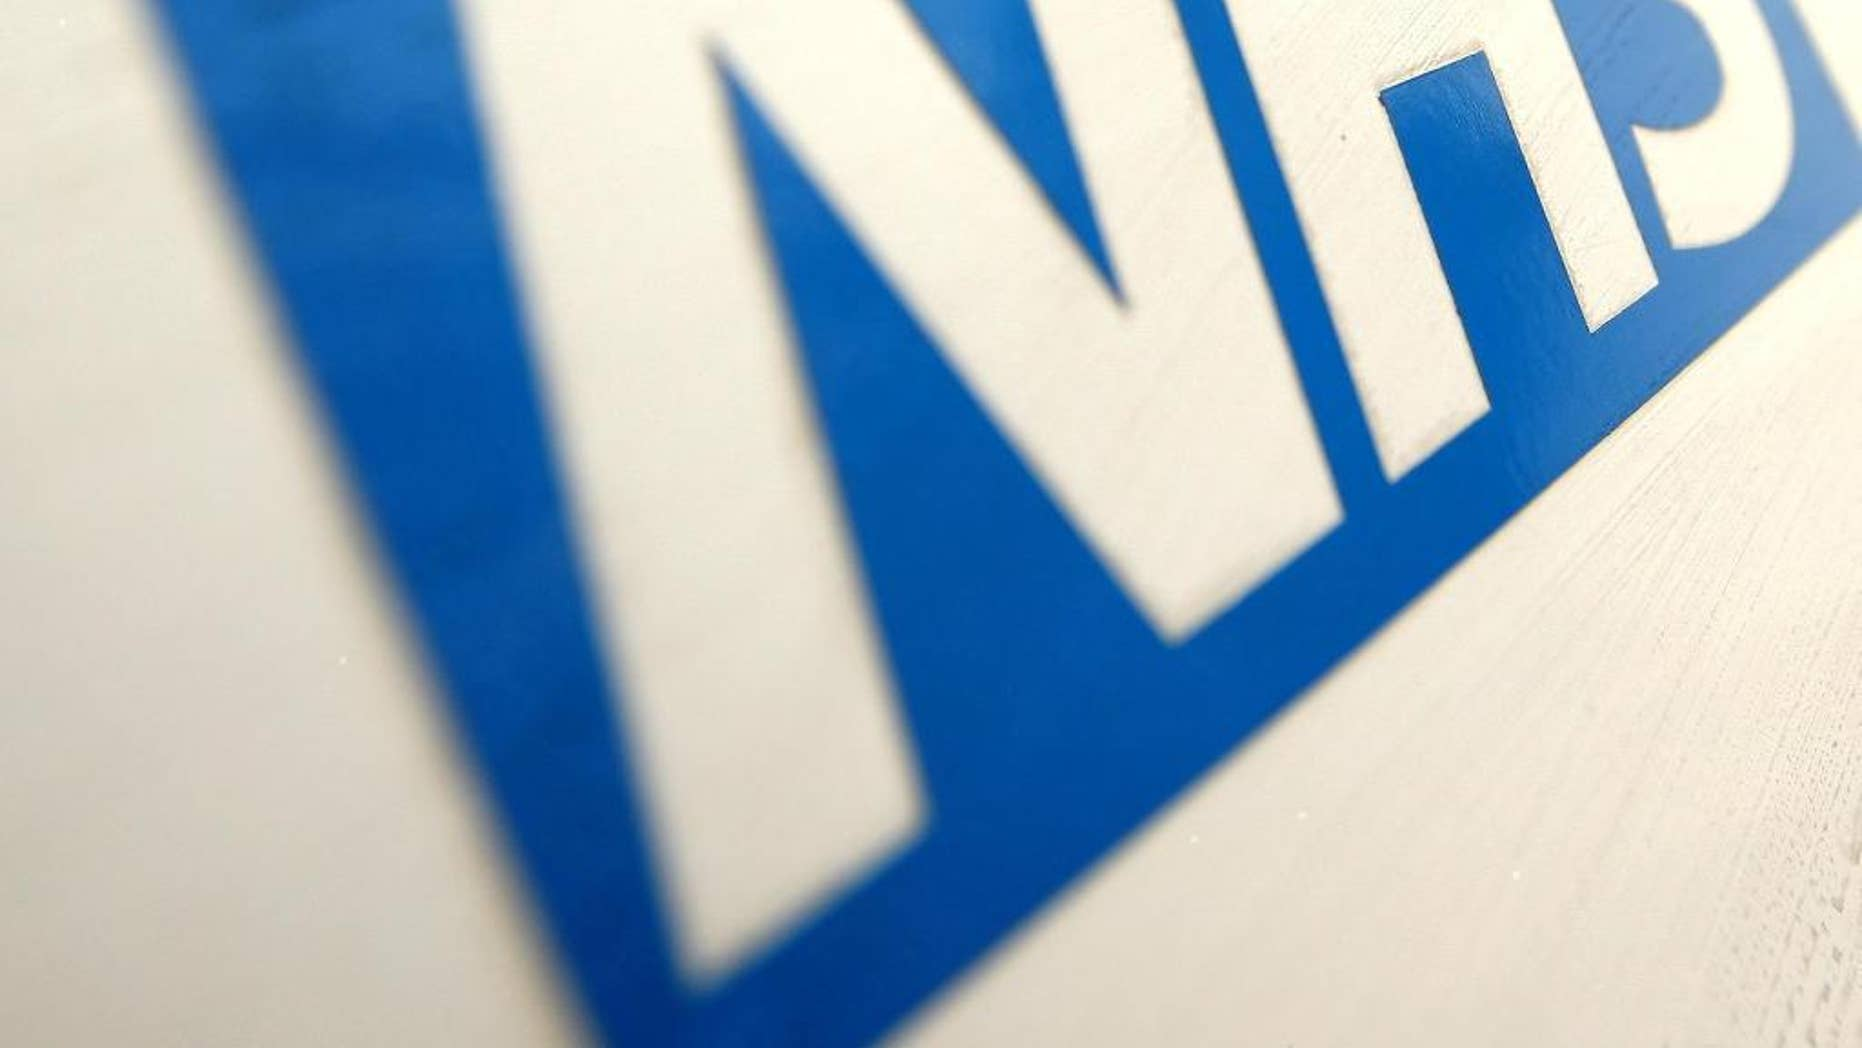 """FILE In this Dec. 12, 2010 file photo of the NHS Logo. The British Red Cross says overcrowding in hospital emergency rooms has become a """"humanitarian crisis."""" The charity says it has dispatched volunteers to help patients go home and free up hospital beds. It claims cuts to social-care funding by the Conservative government mean some patients can't be discharged because there is no support available, putting pressure on hospitals. Government supporters say the Red Cross is exaggerating the scale of the problem. (Dominic Lipinski/PA via AP, File)"""